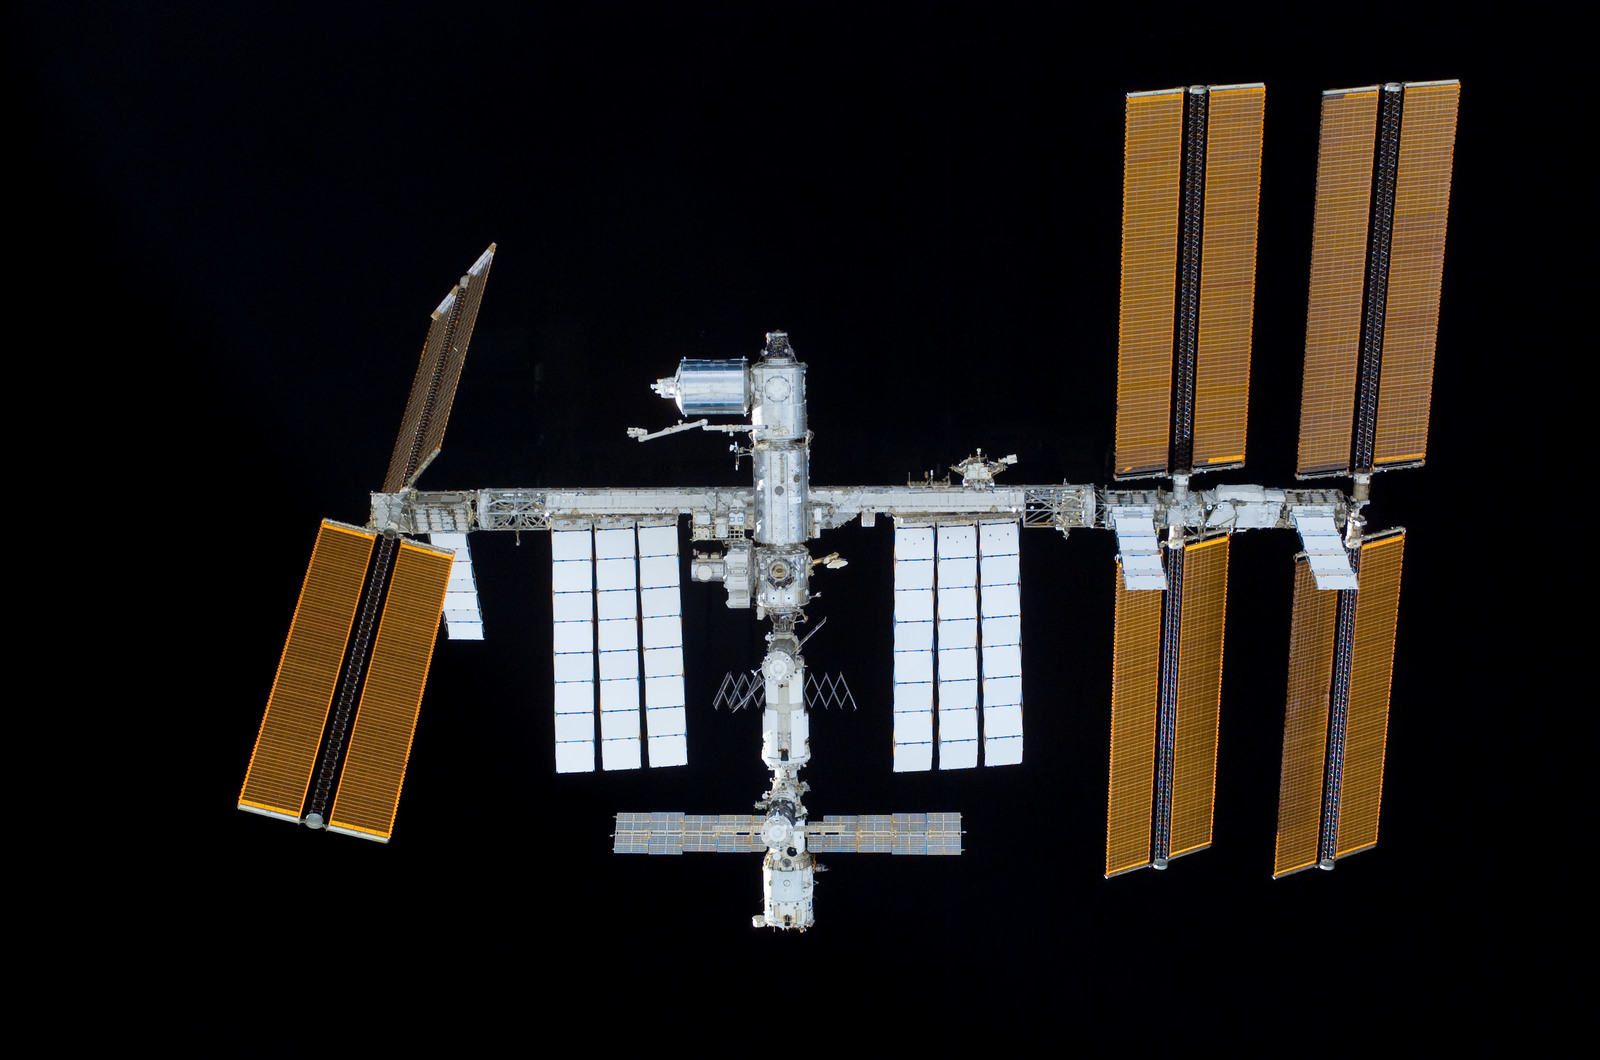 S122E011028 - STS-122 - View of ISS after STS-122 Undocking